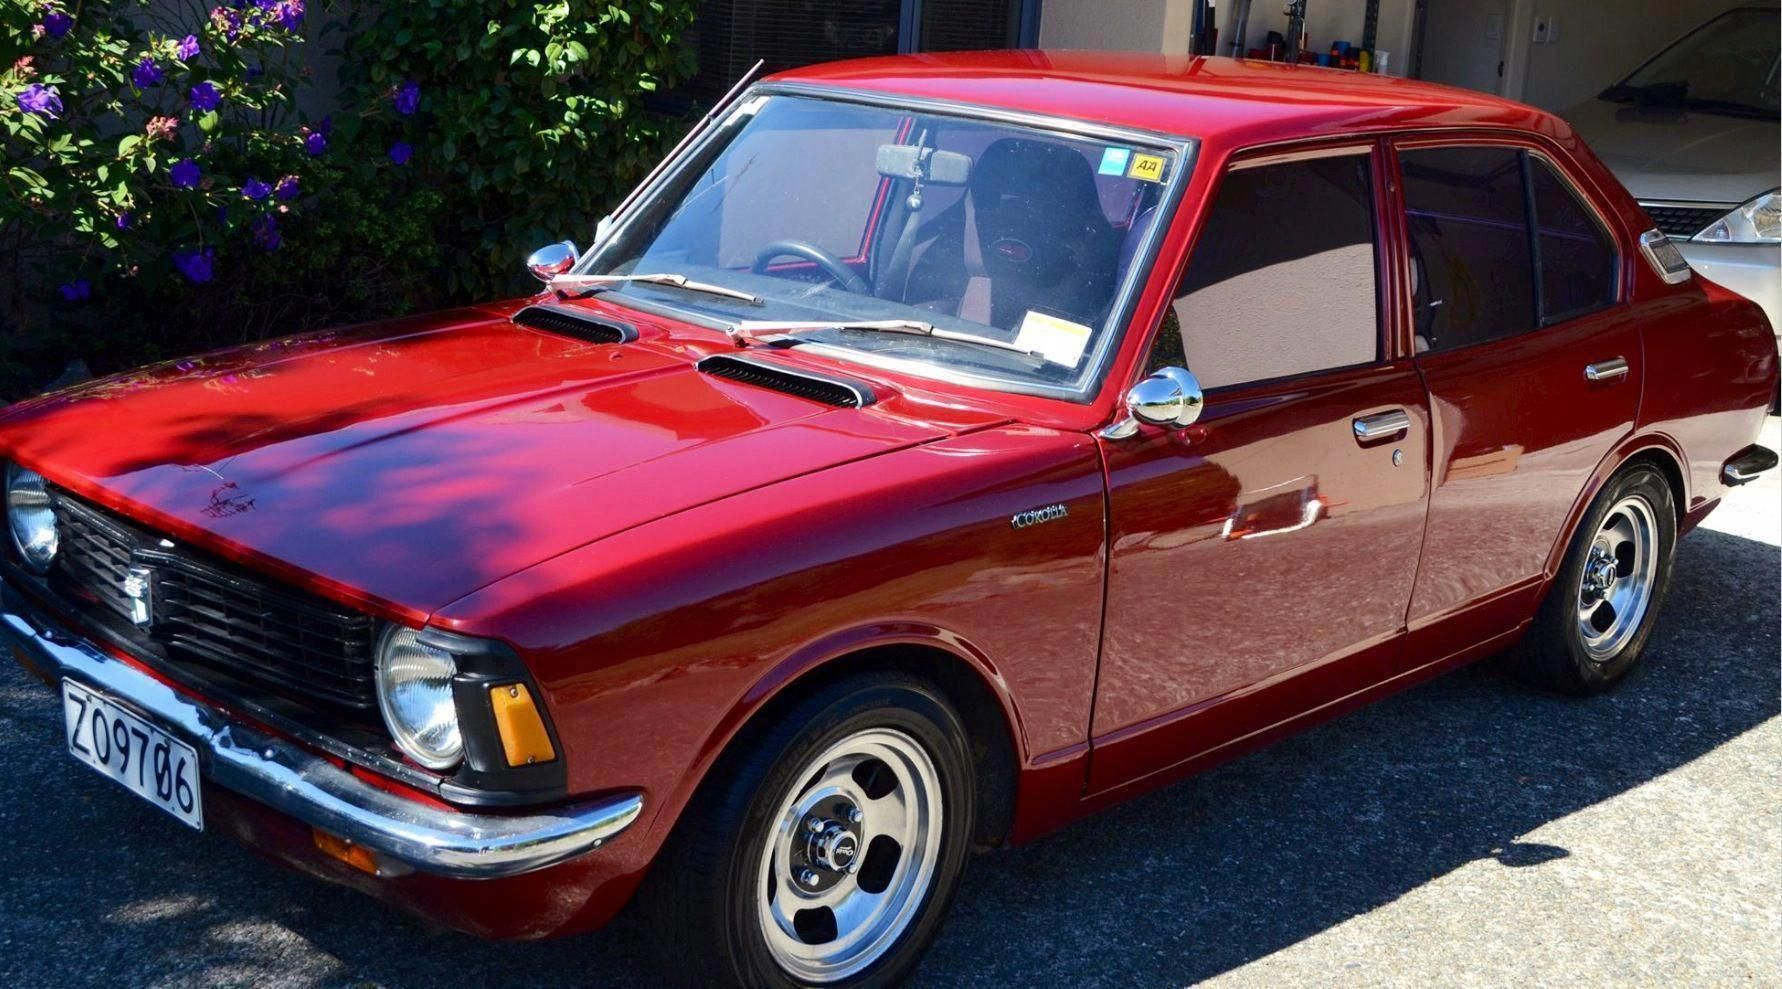 toyota classic cars knoebels Toyotaclassiccars Cars for